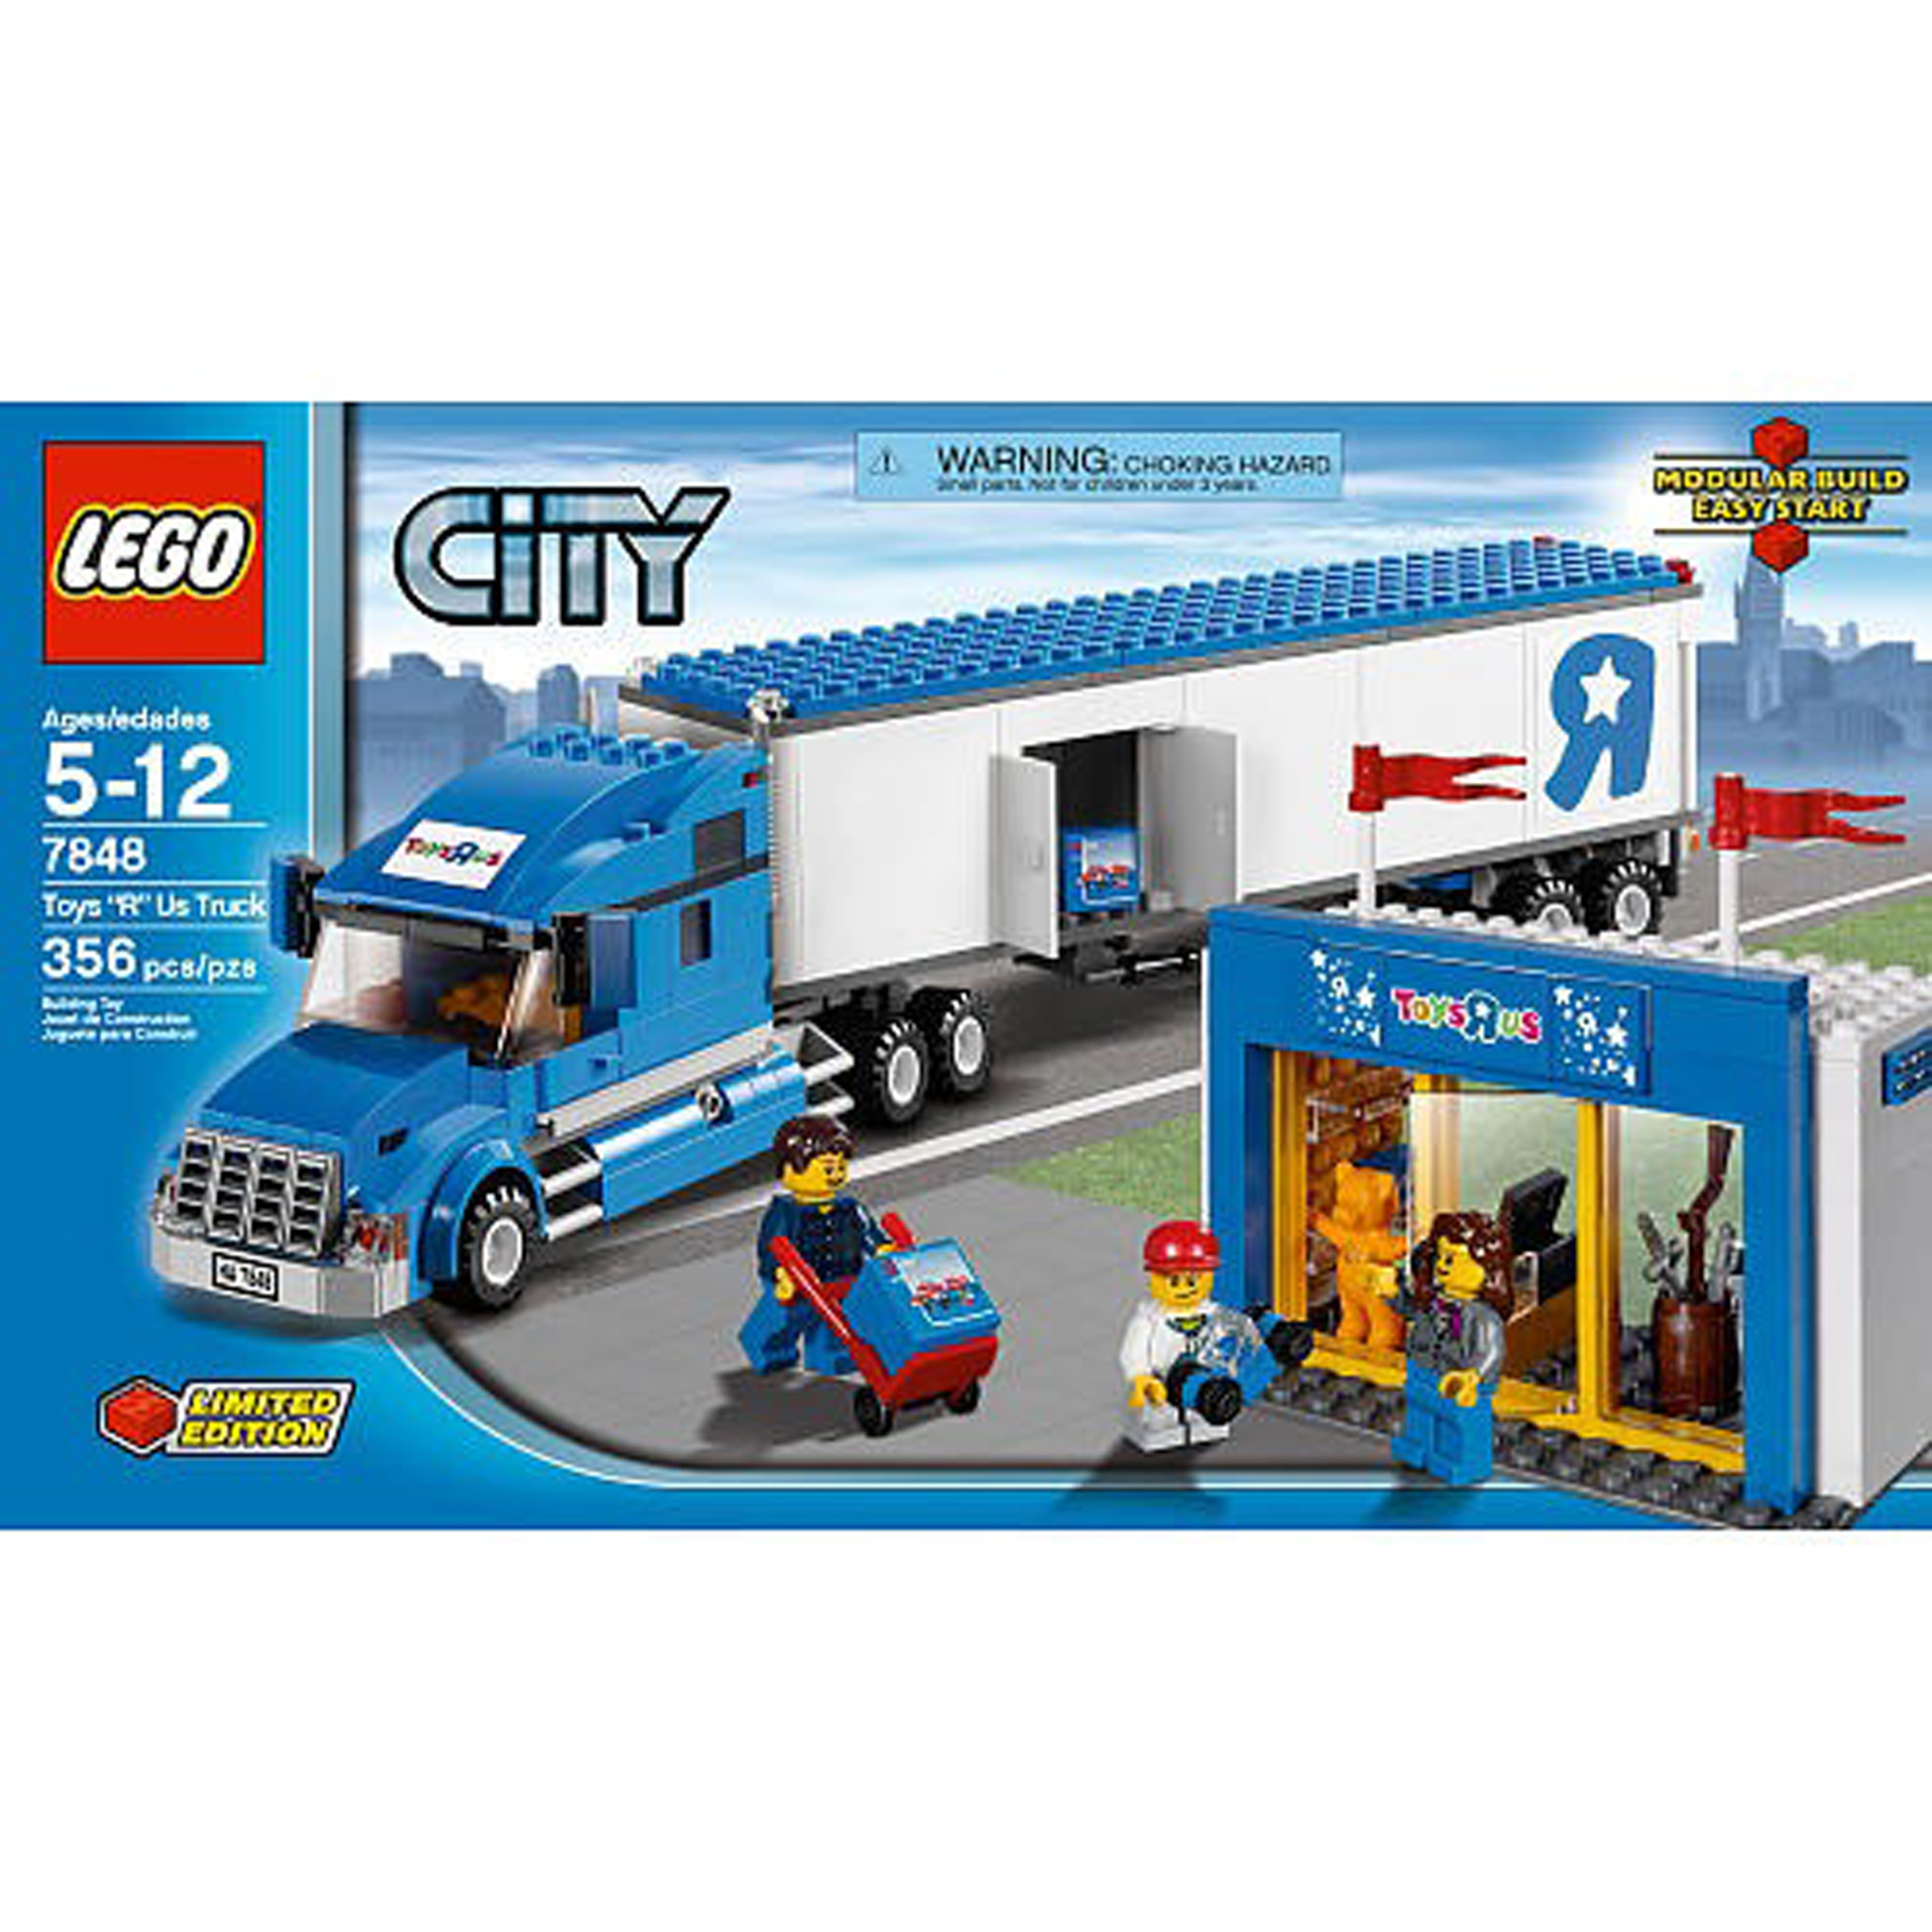 Lego Sets At Toys R Us : Lego city toys r us truck review